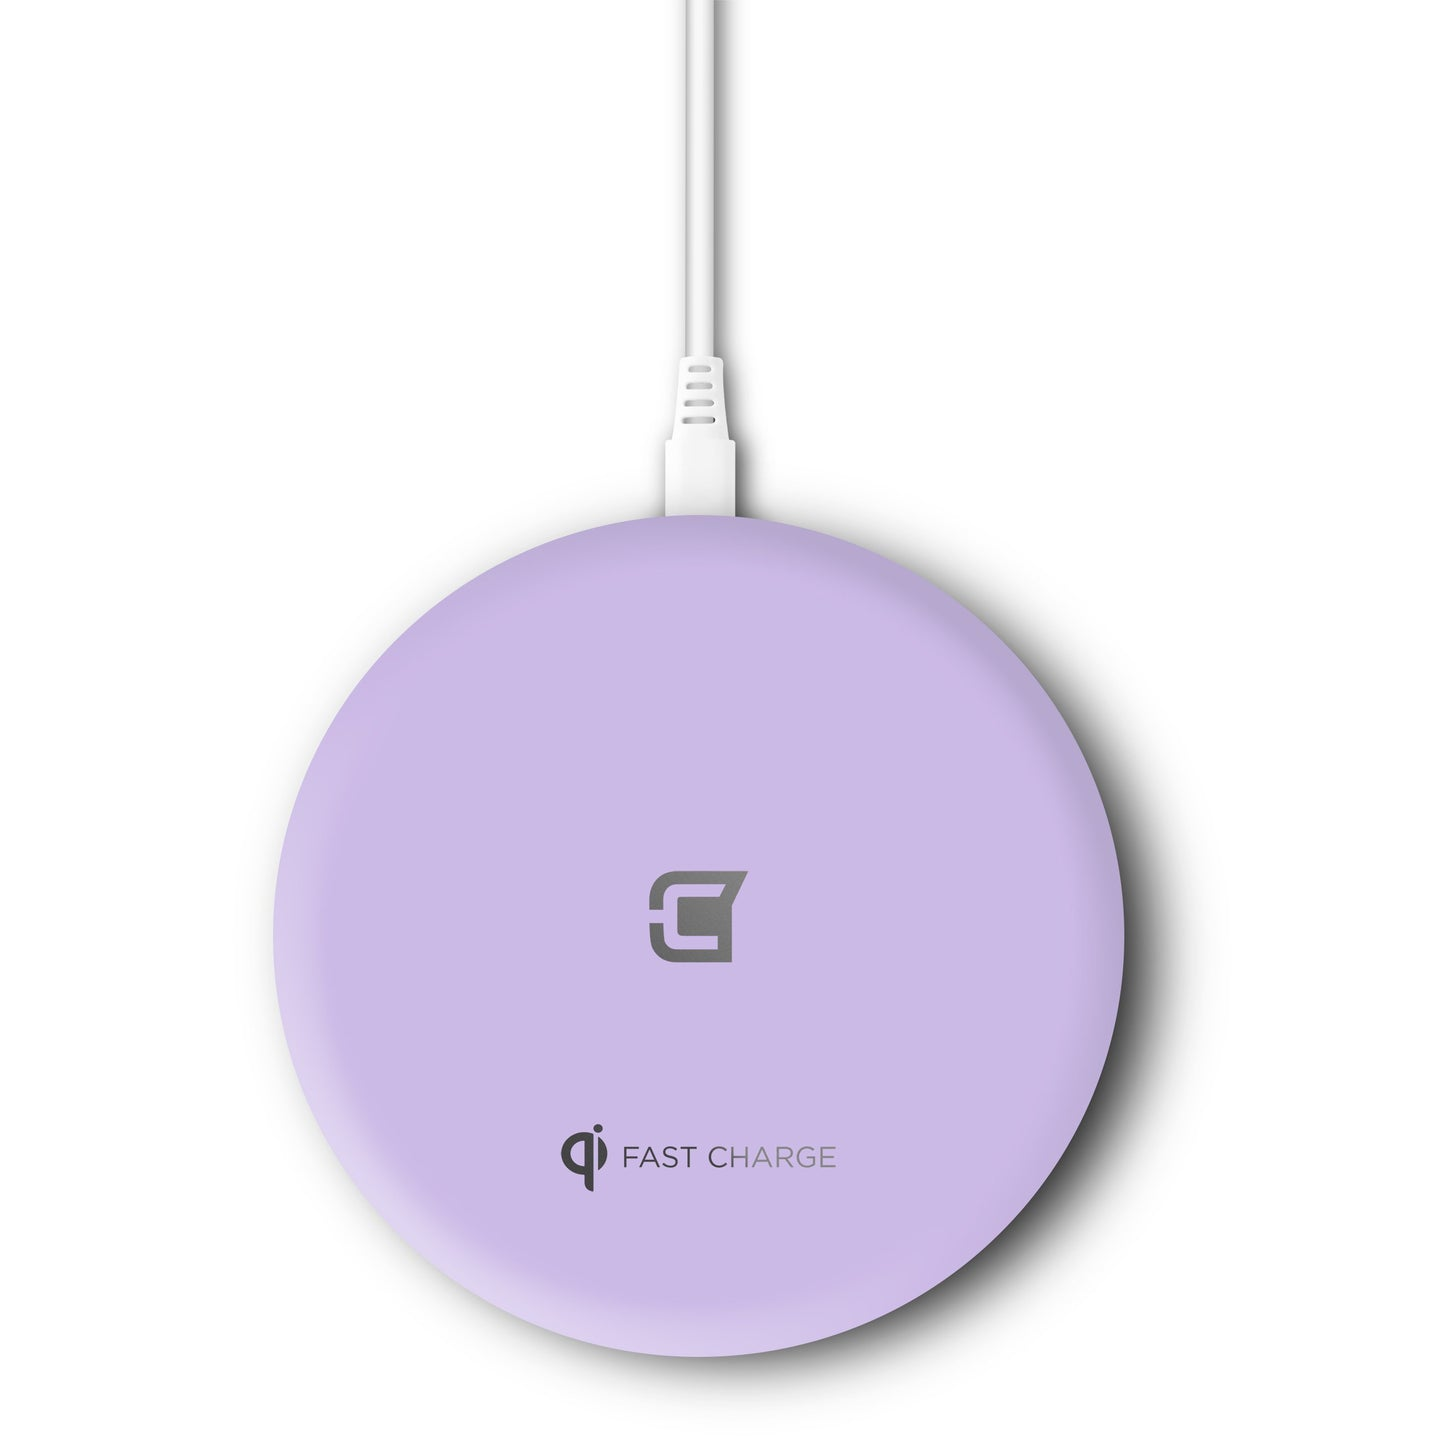 Super Fast Wireless Charger - Nitro II - Violet | App Store Canada